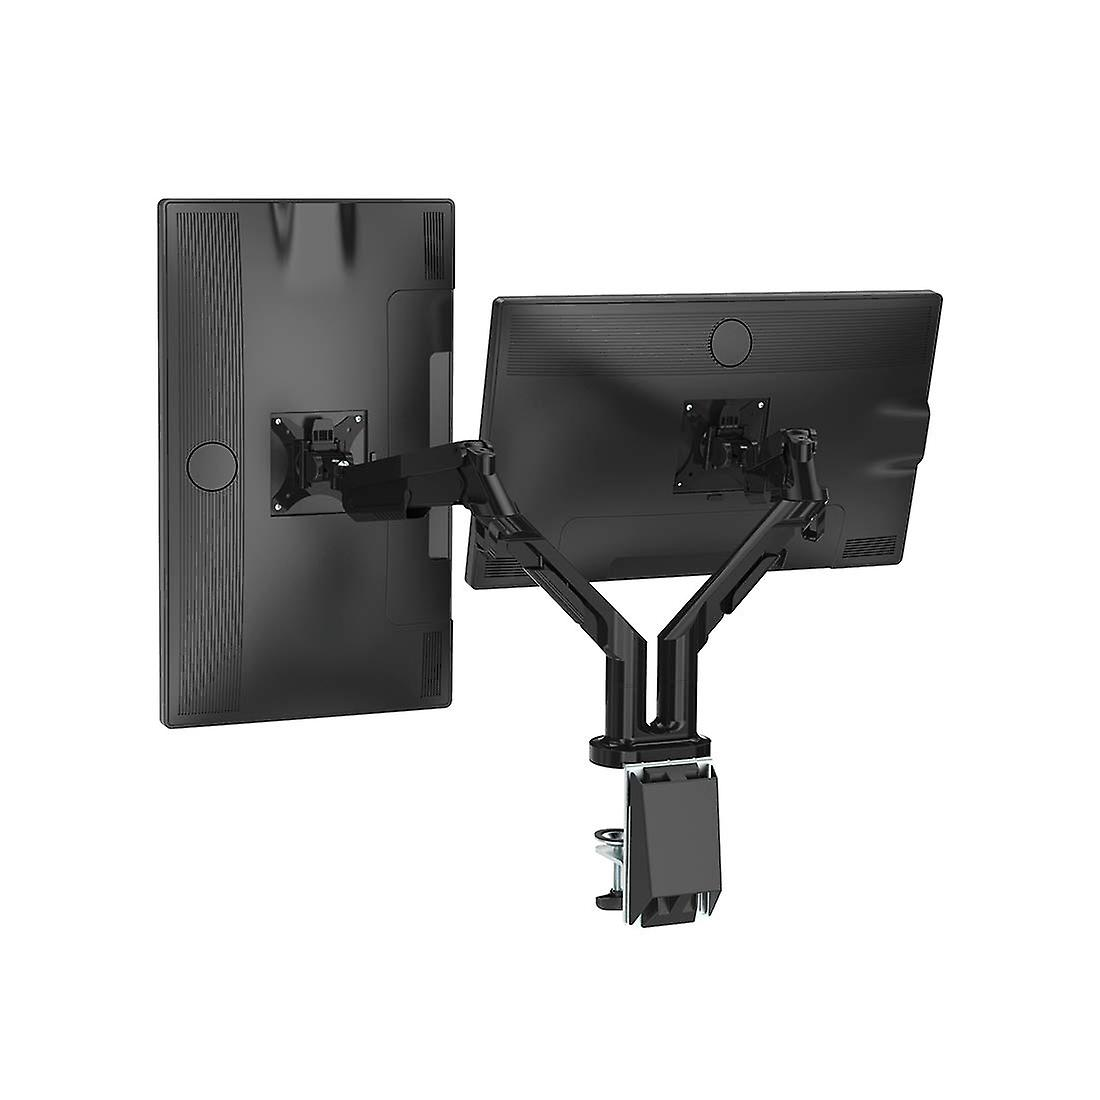 Full Motion dual arm Desk monitor mount stand past 17